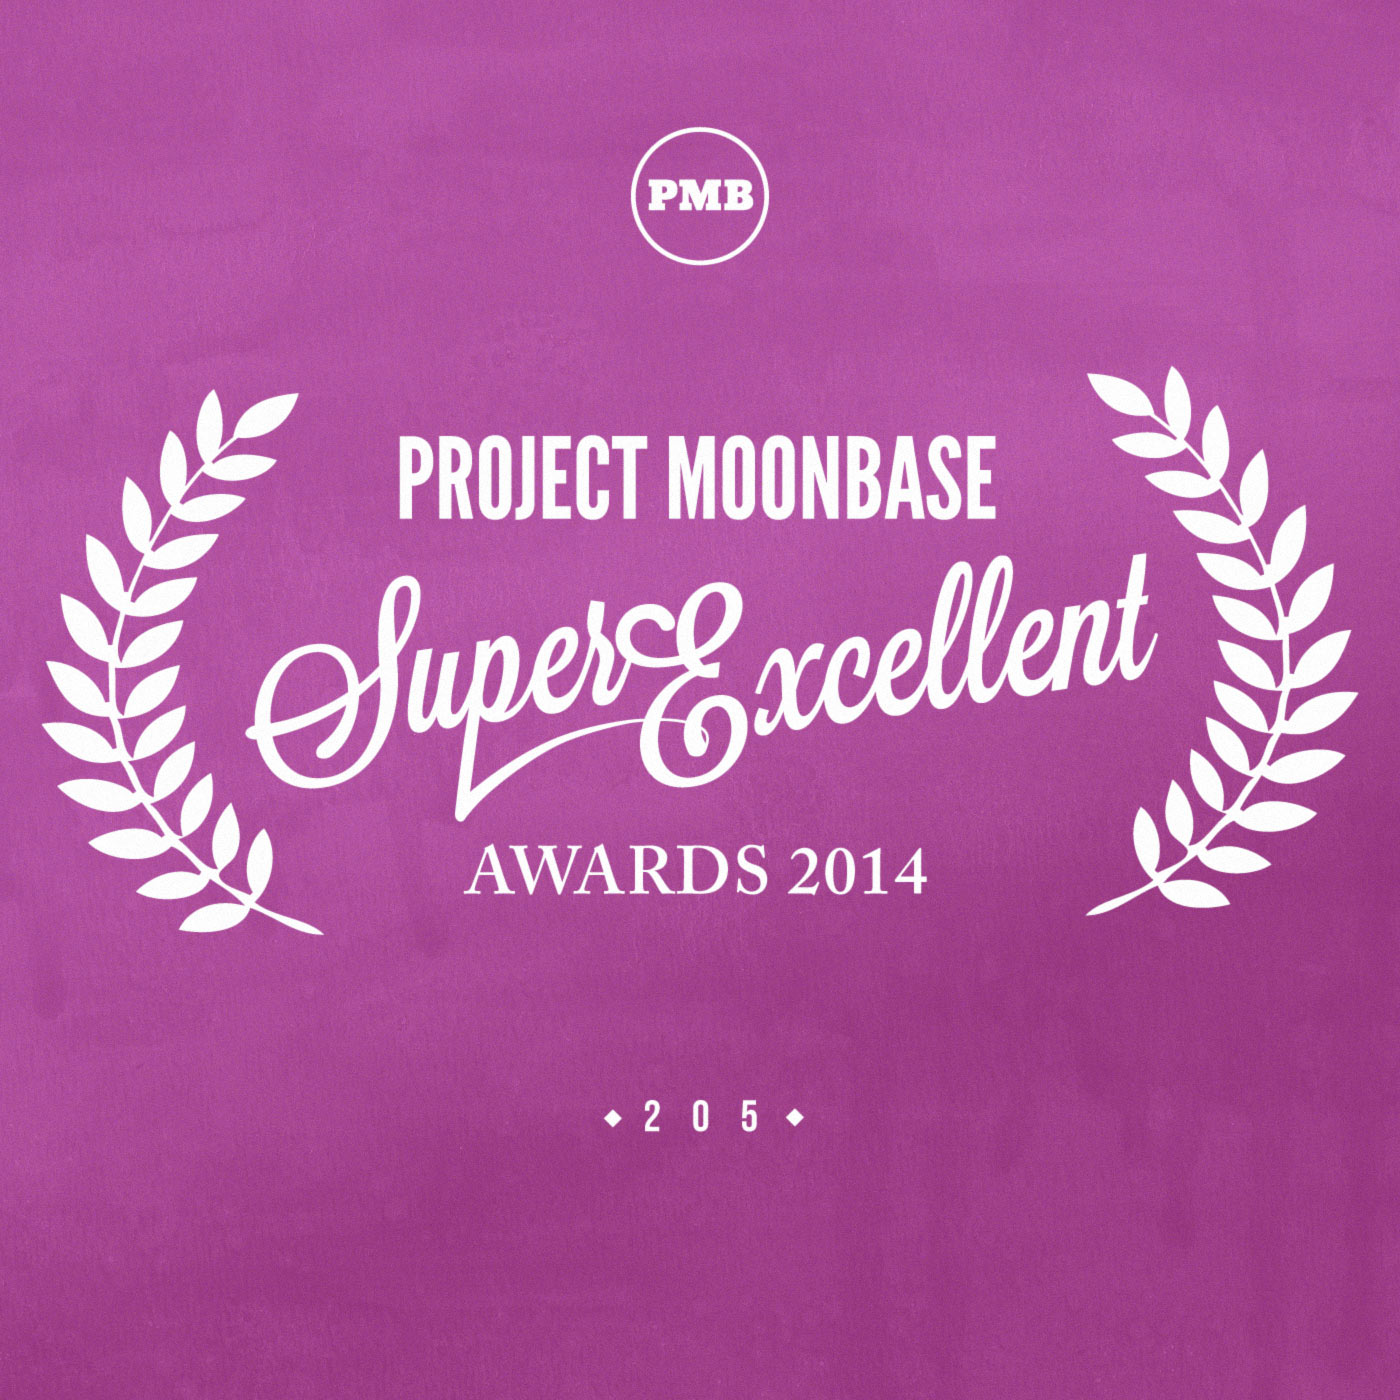 PMB205: Super Excellent Awards 2014